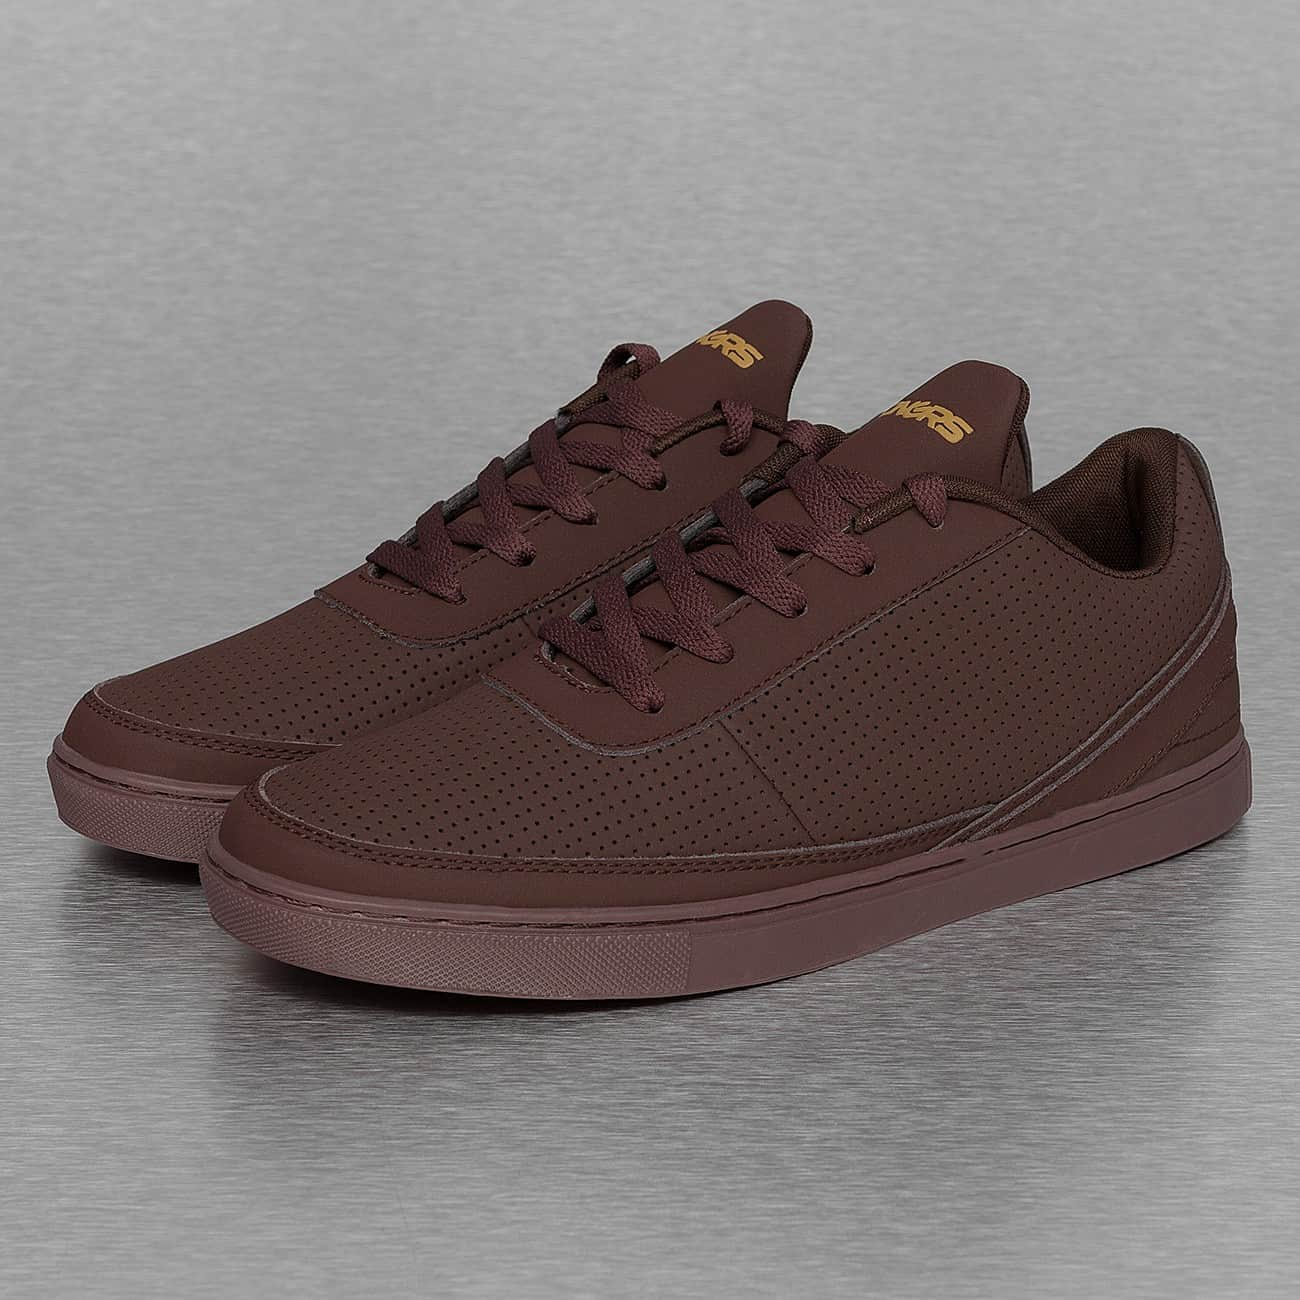 streetwear fashion online shop dangerous dngrs perforated sneakers burgundy auf rechnung. Black Bedroom Furniture Sets. Home Design Ideas